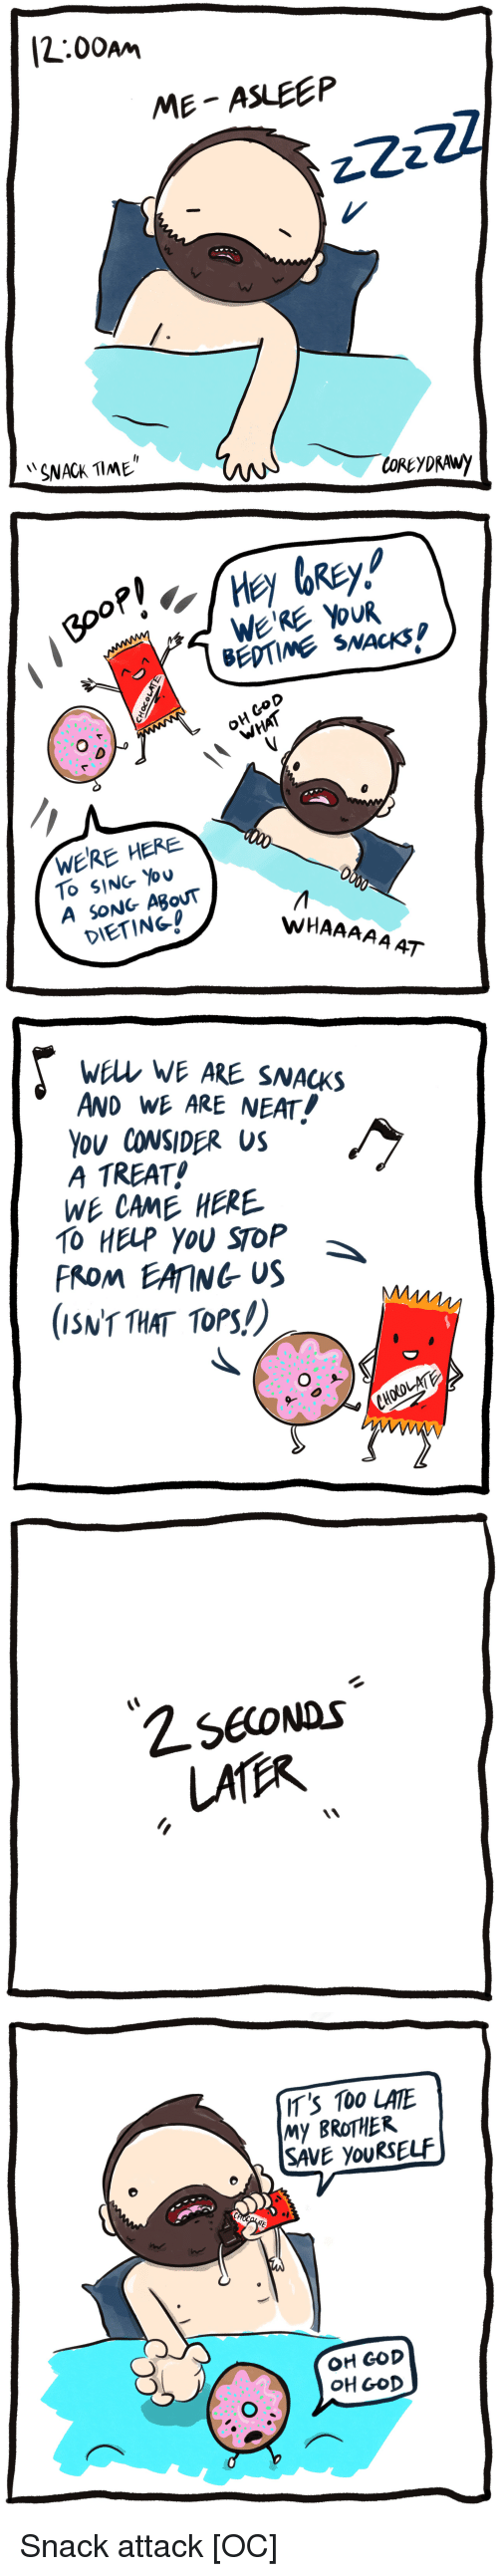 Dieting: [2:00am  ME ASLEEP  SNACK TlME   BEDTIME SNACKS  O D  OH CoD  WERE HERE  To SING You  A SONG ABouT  DIETING!  WHAAAAA AT   wELL WE ARE SNACKS  AND WE ARE NEAT!  Ou CONSIDER US  A TREAT  WE CAME HERE  TO HELP YOU SToP  FROM EAING US  (ISNT THAT TOPS!)   IT'S 100 LATE  My BROTHER  SAVE youRSELF  OH GOD  OH GOD Snack attack [OC]